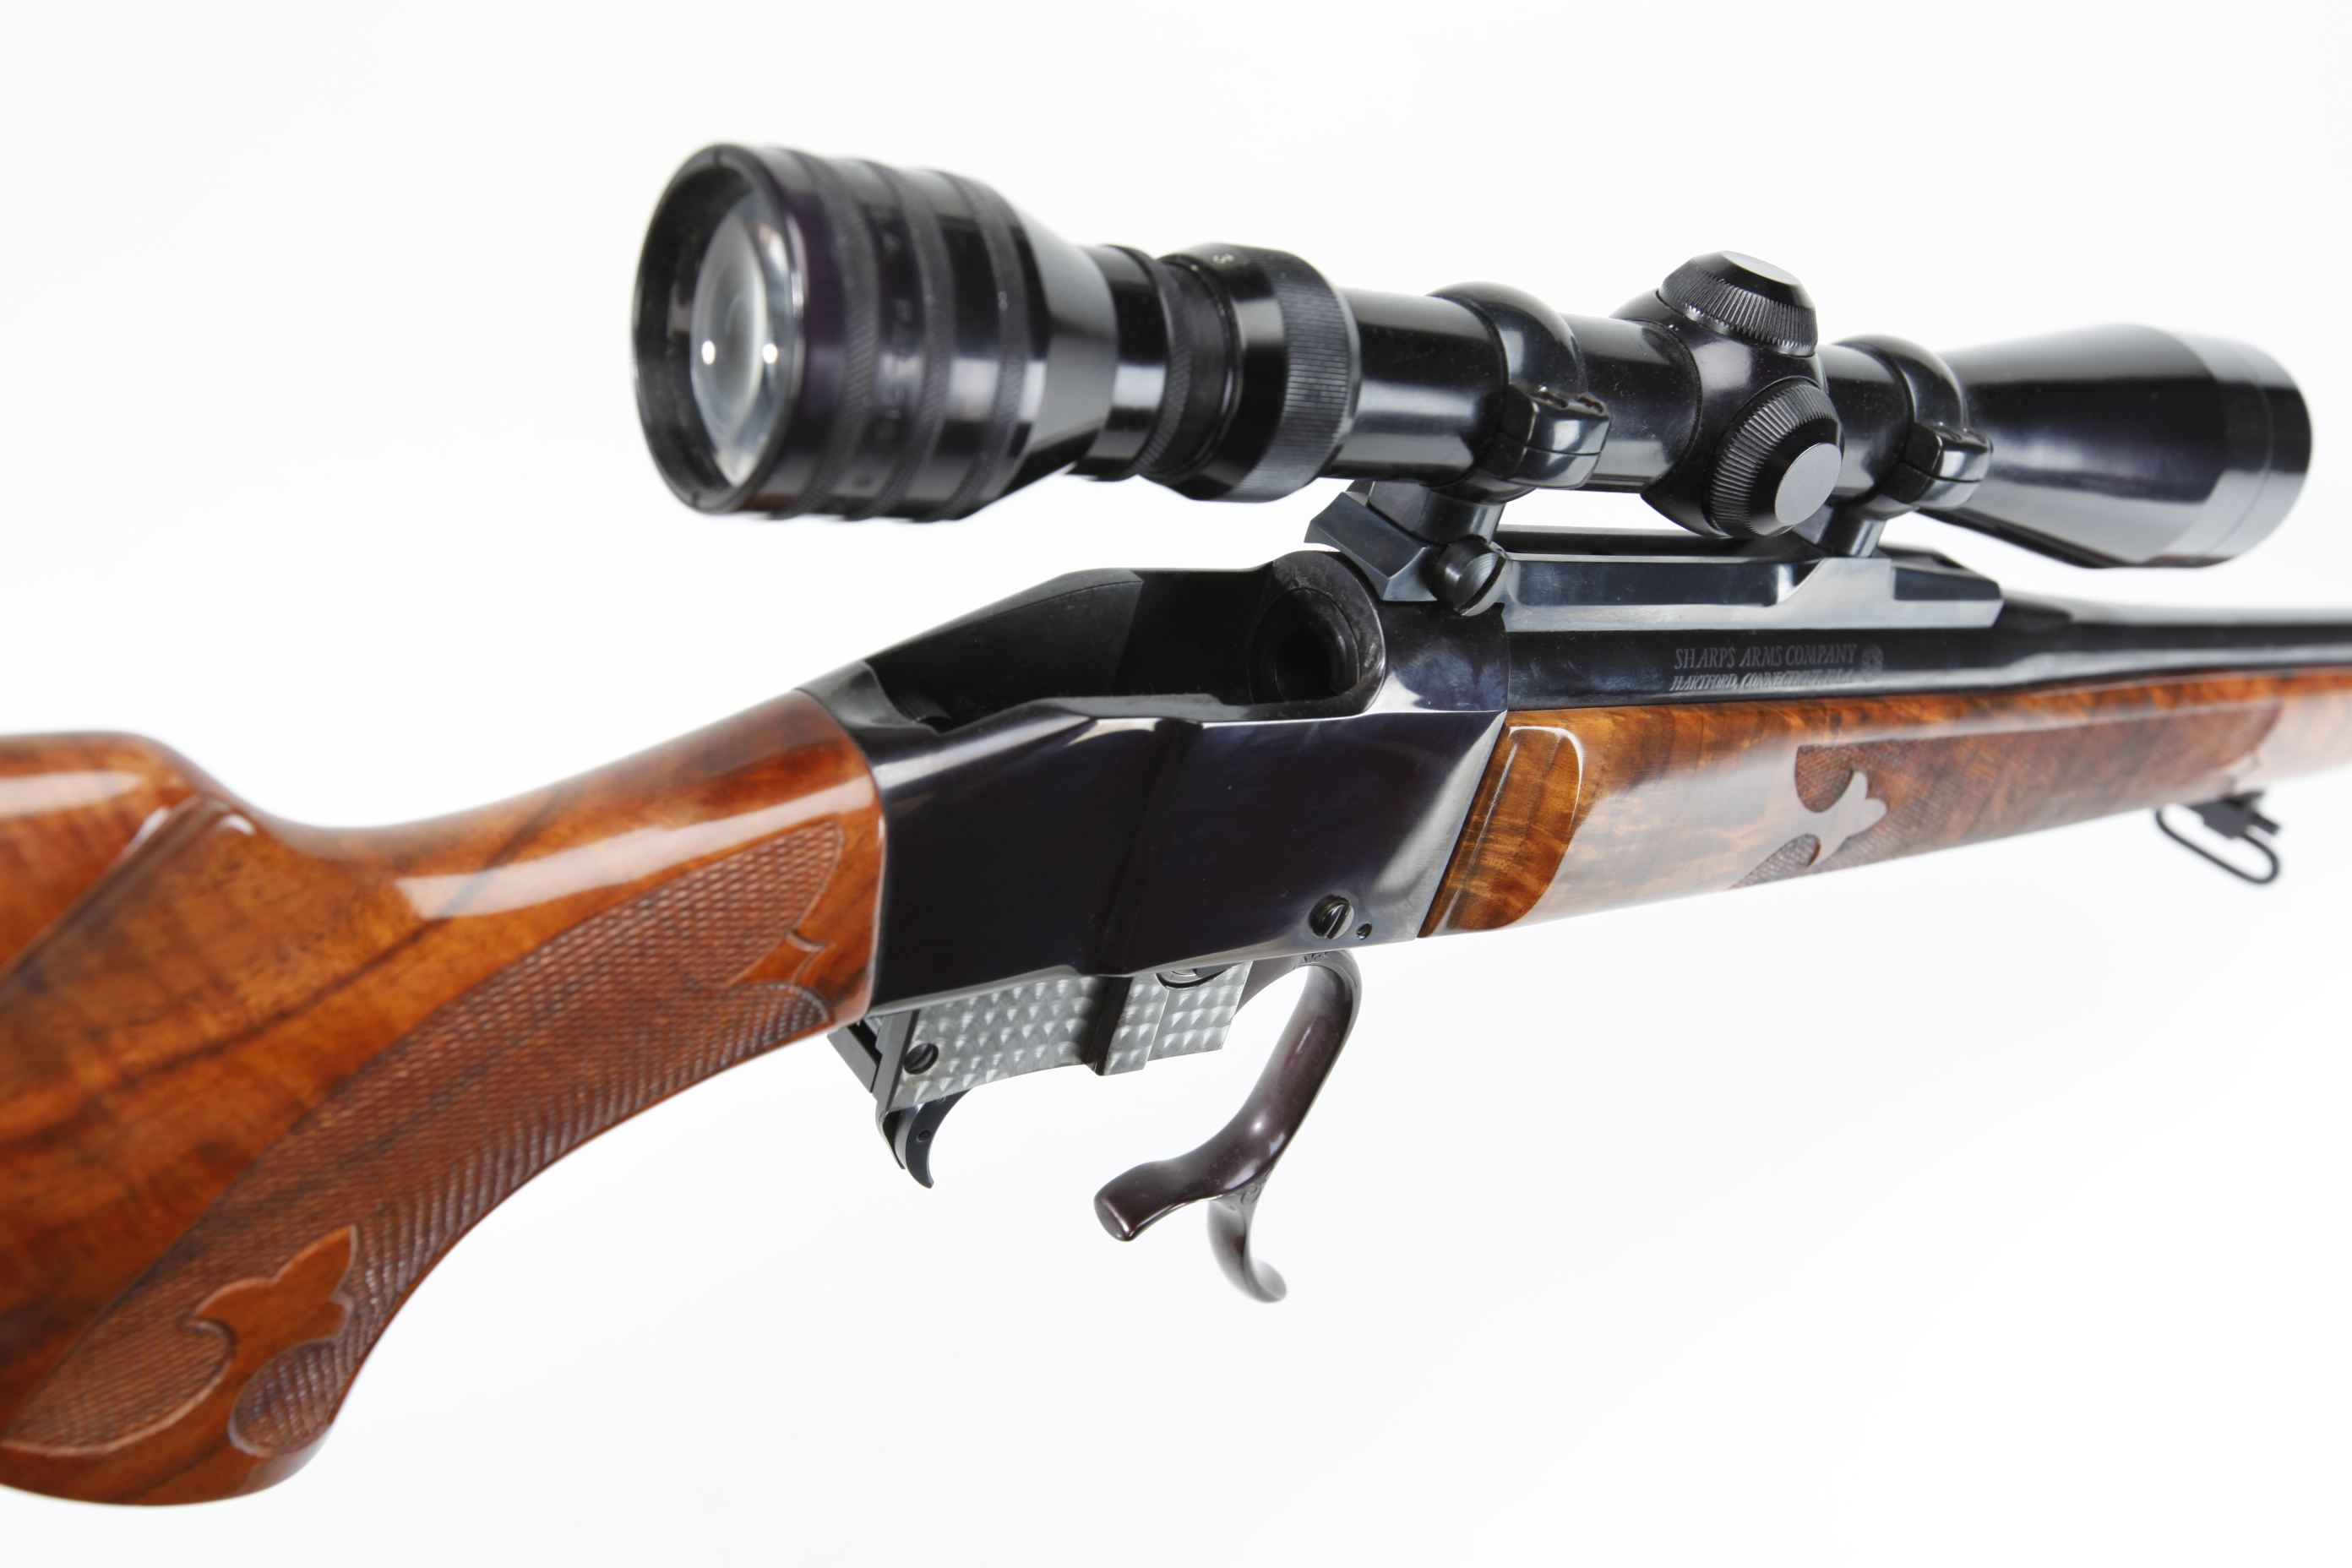 Colt Sharps Falling Block Sporting Rifle with telescopic sight